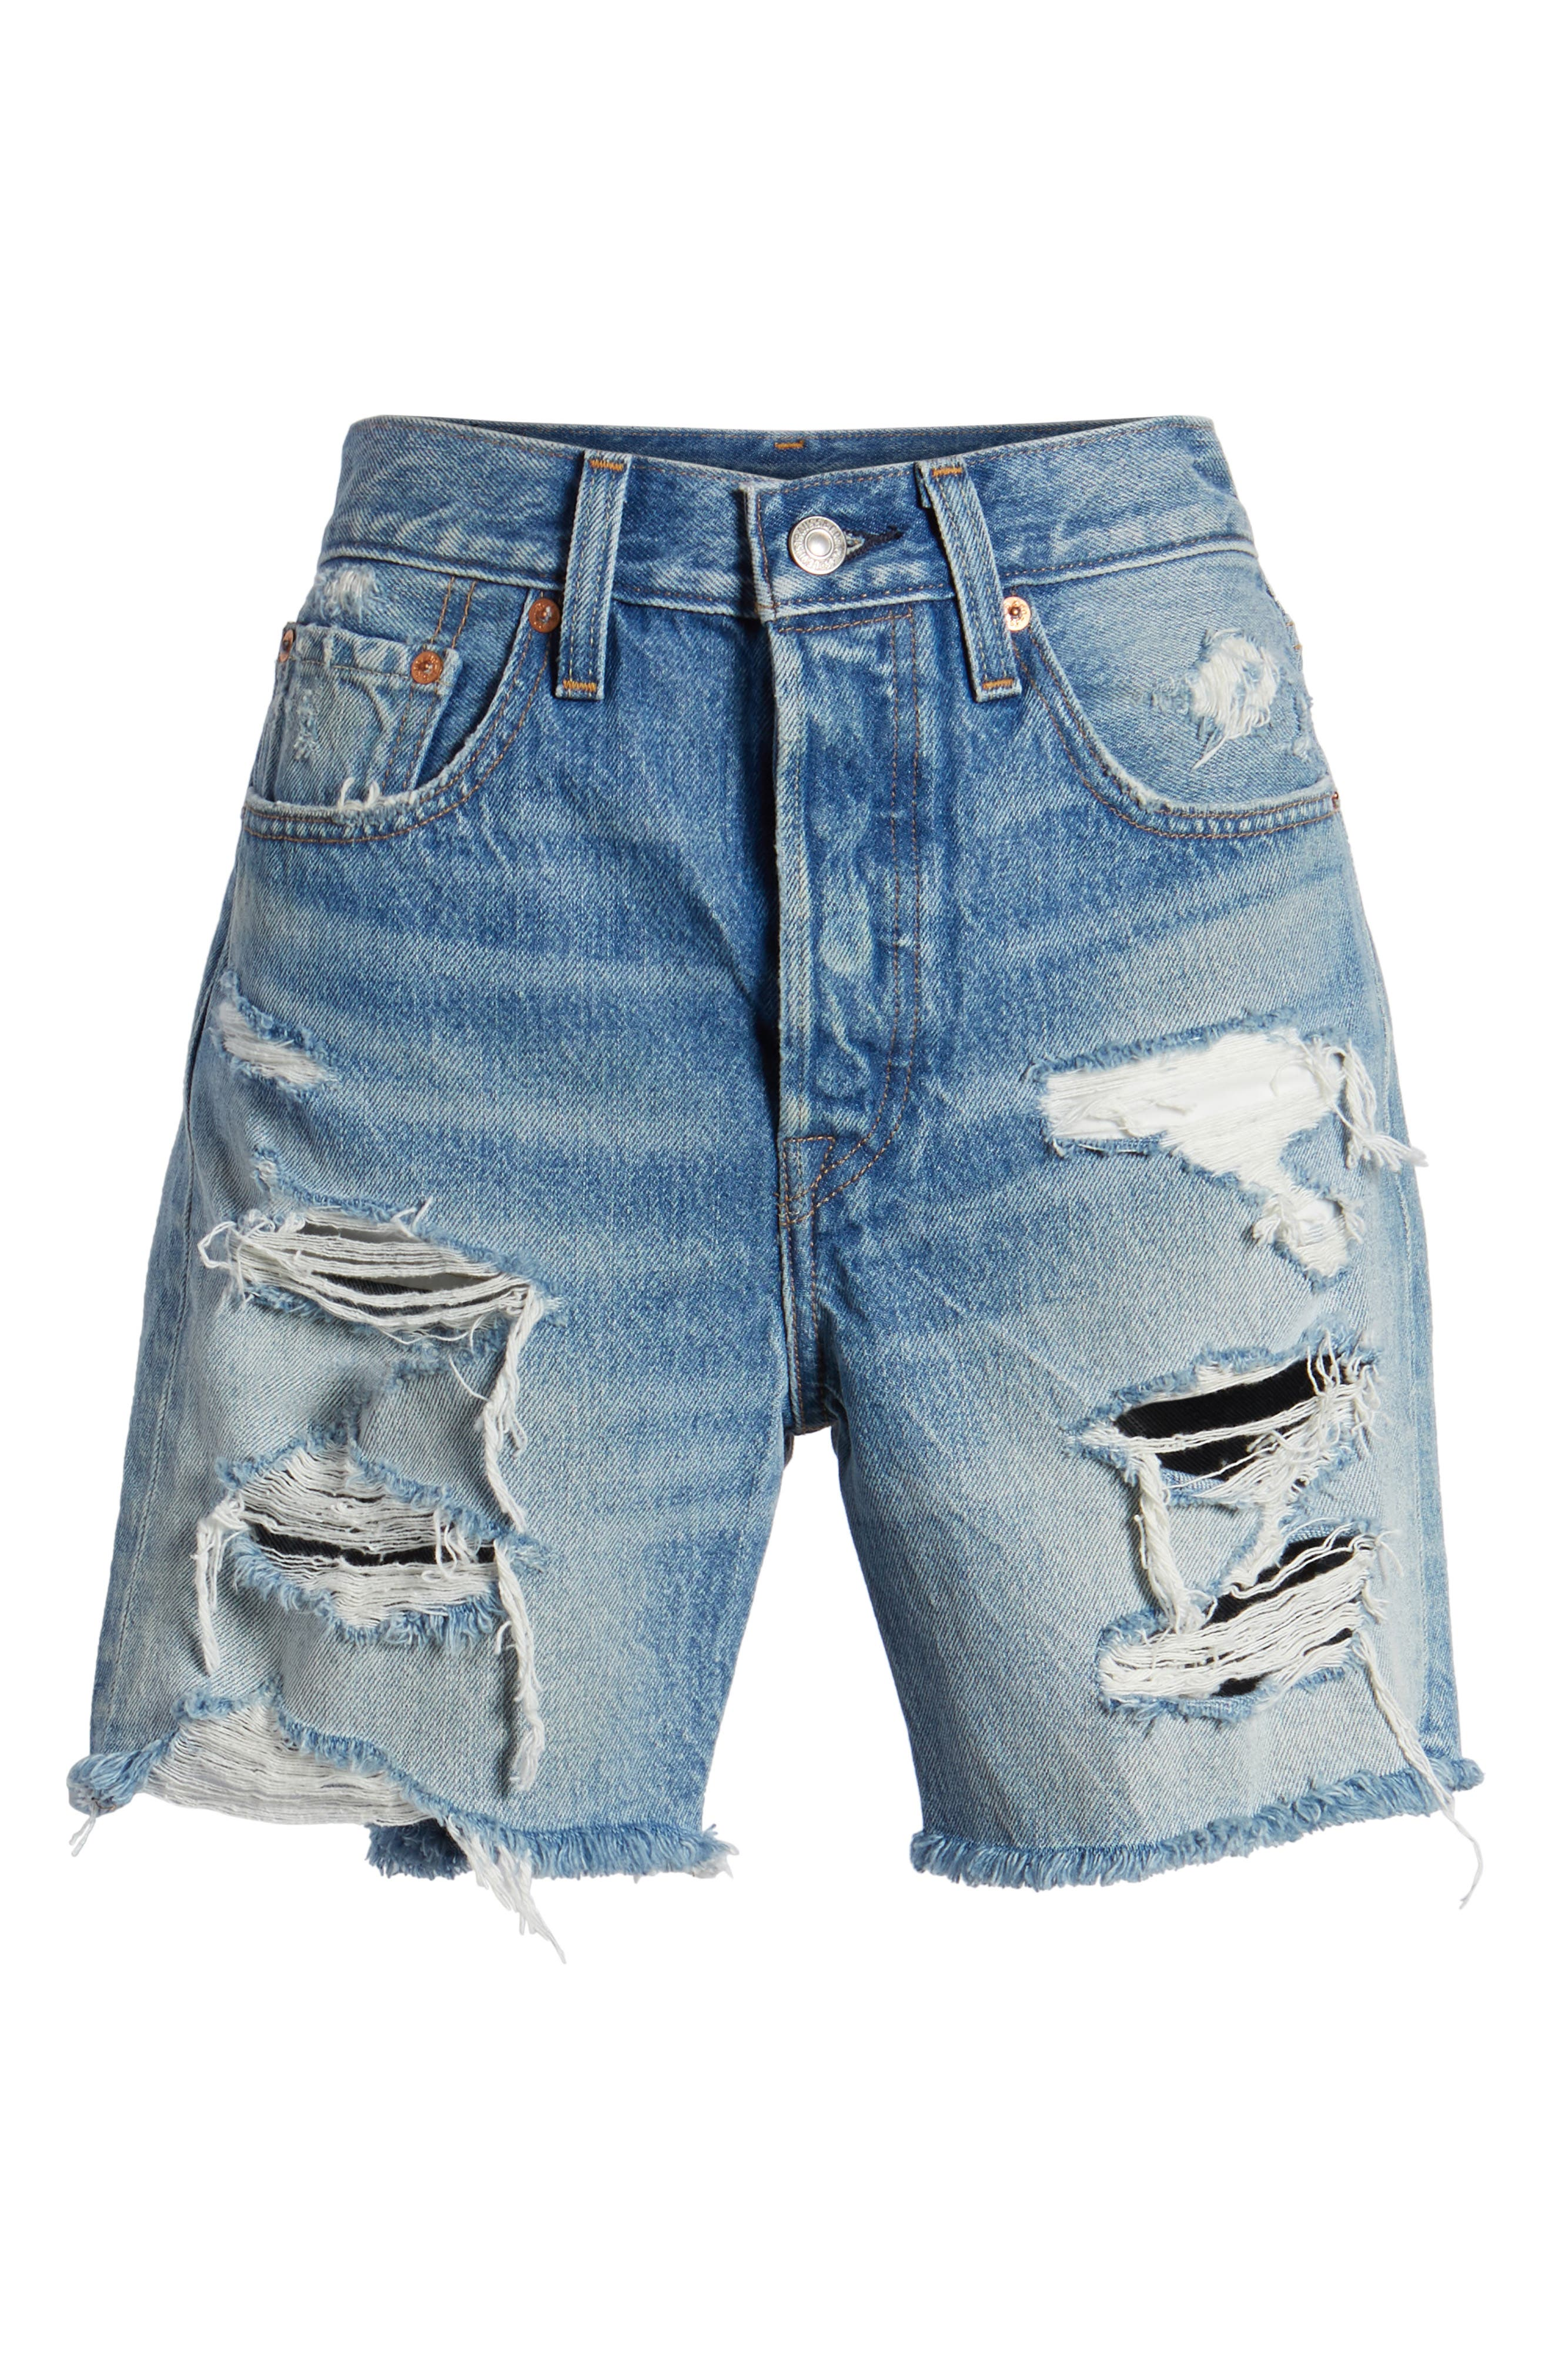 Indie Shredded Cutoff Denim Shorts,                             Alternate thumbnail 7, color,                             Let It Rip